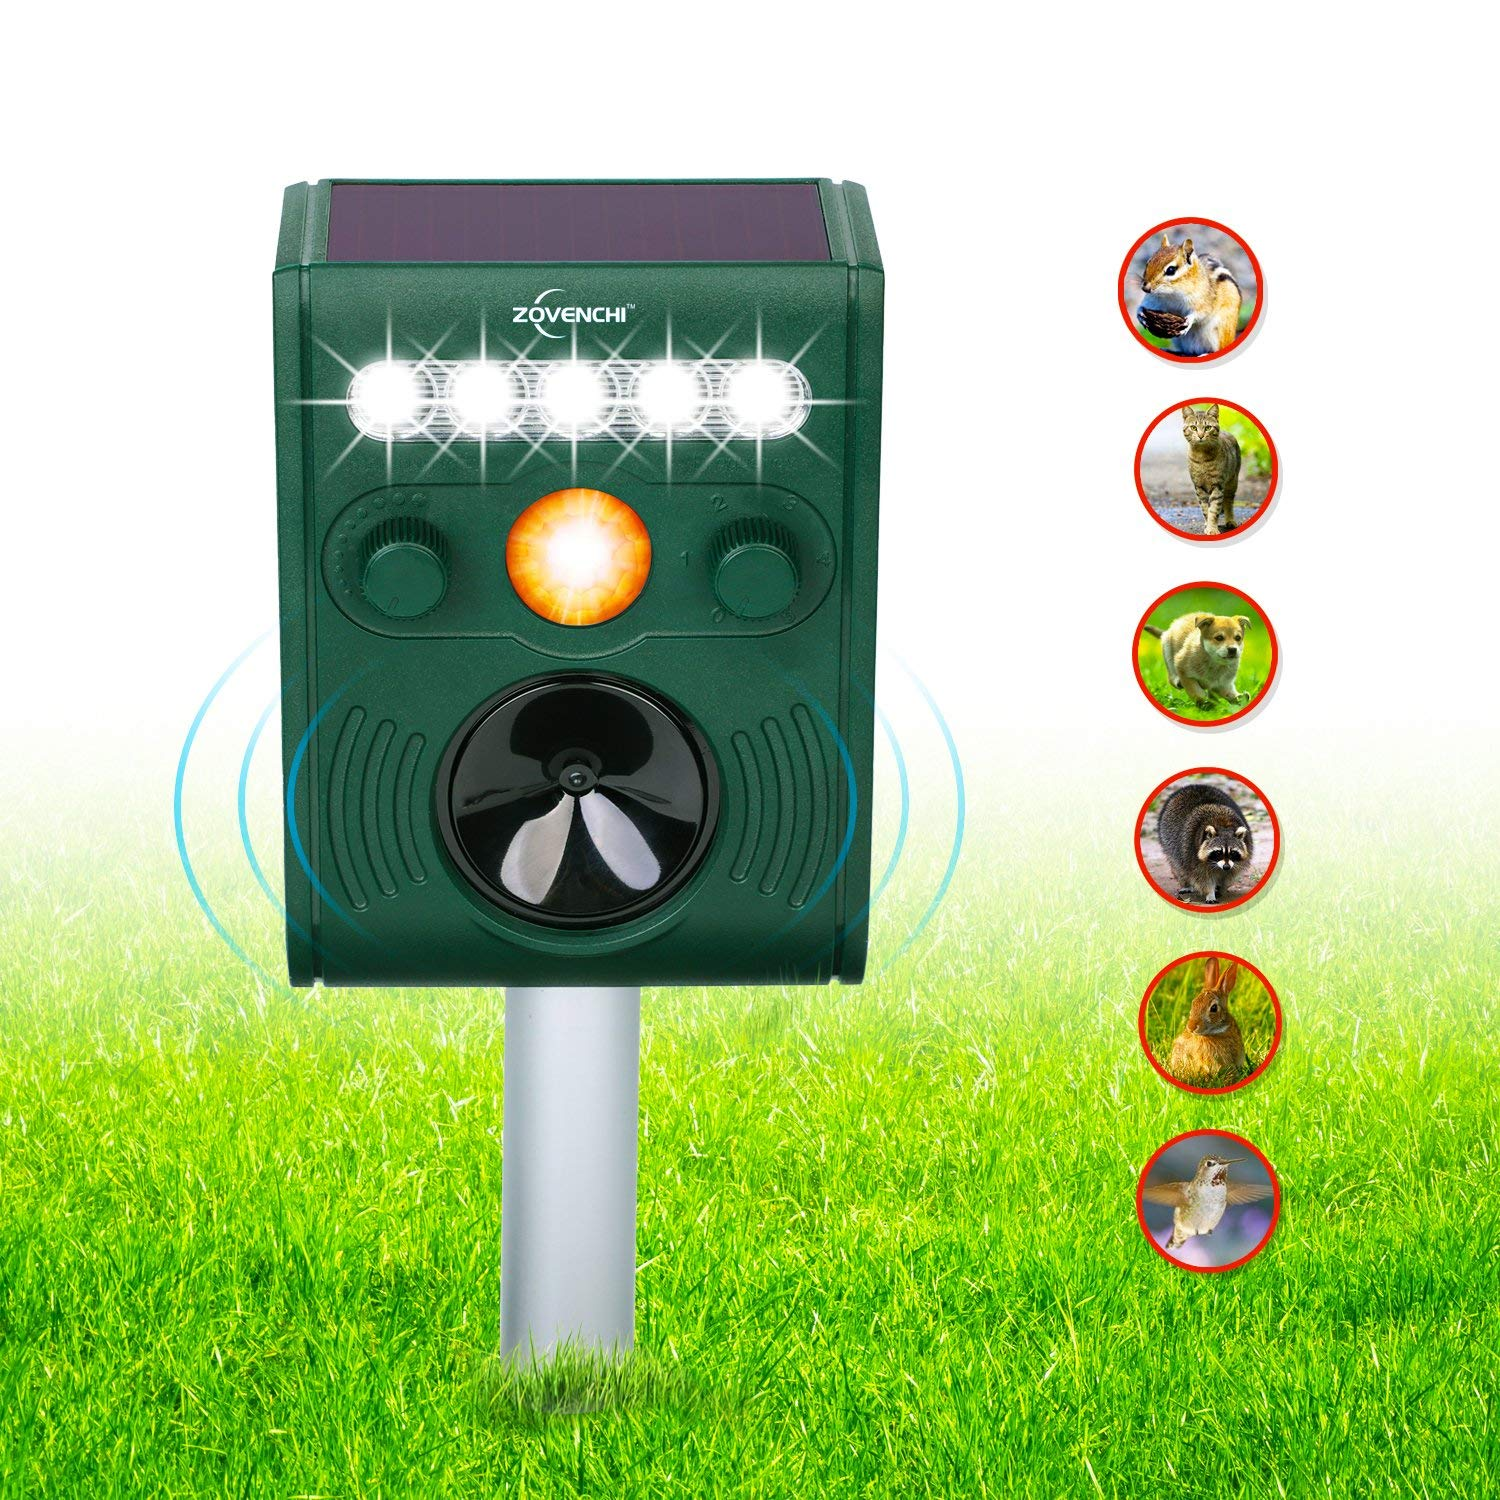 ZOVENCHI 1 Animals, Outdoor Solar Energy with LED Flash, with Motion sen, RC-511 by ZOVENCHI